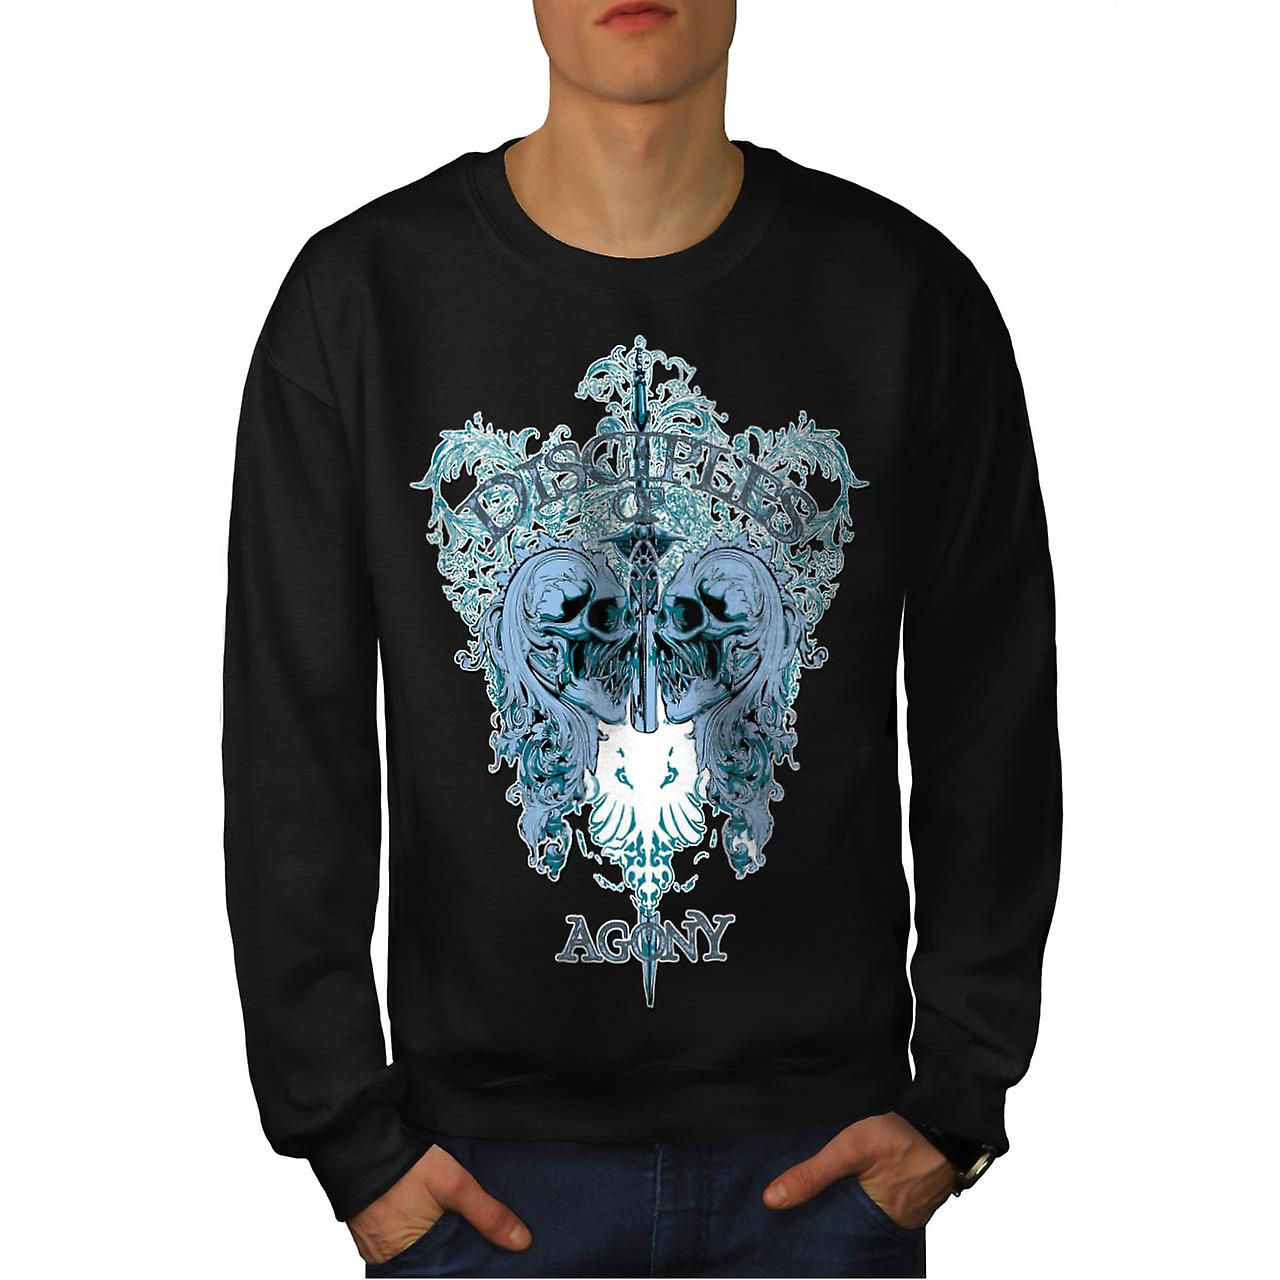 Disciple Of Agony Vintage Men Black Sweatshirt | Wellcoda